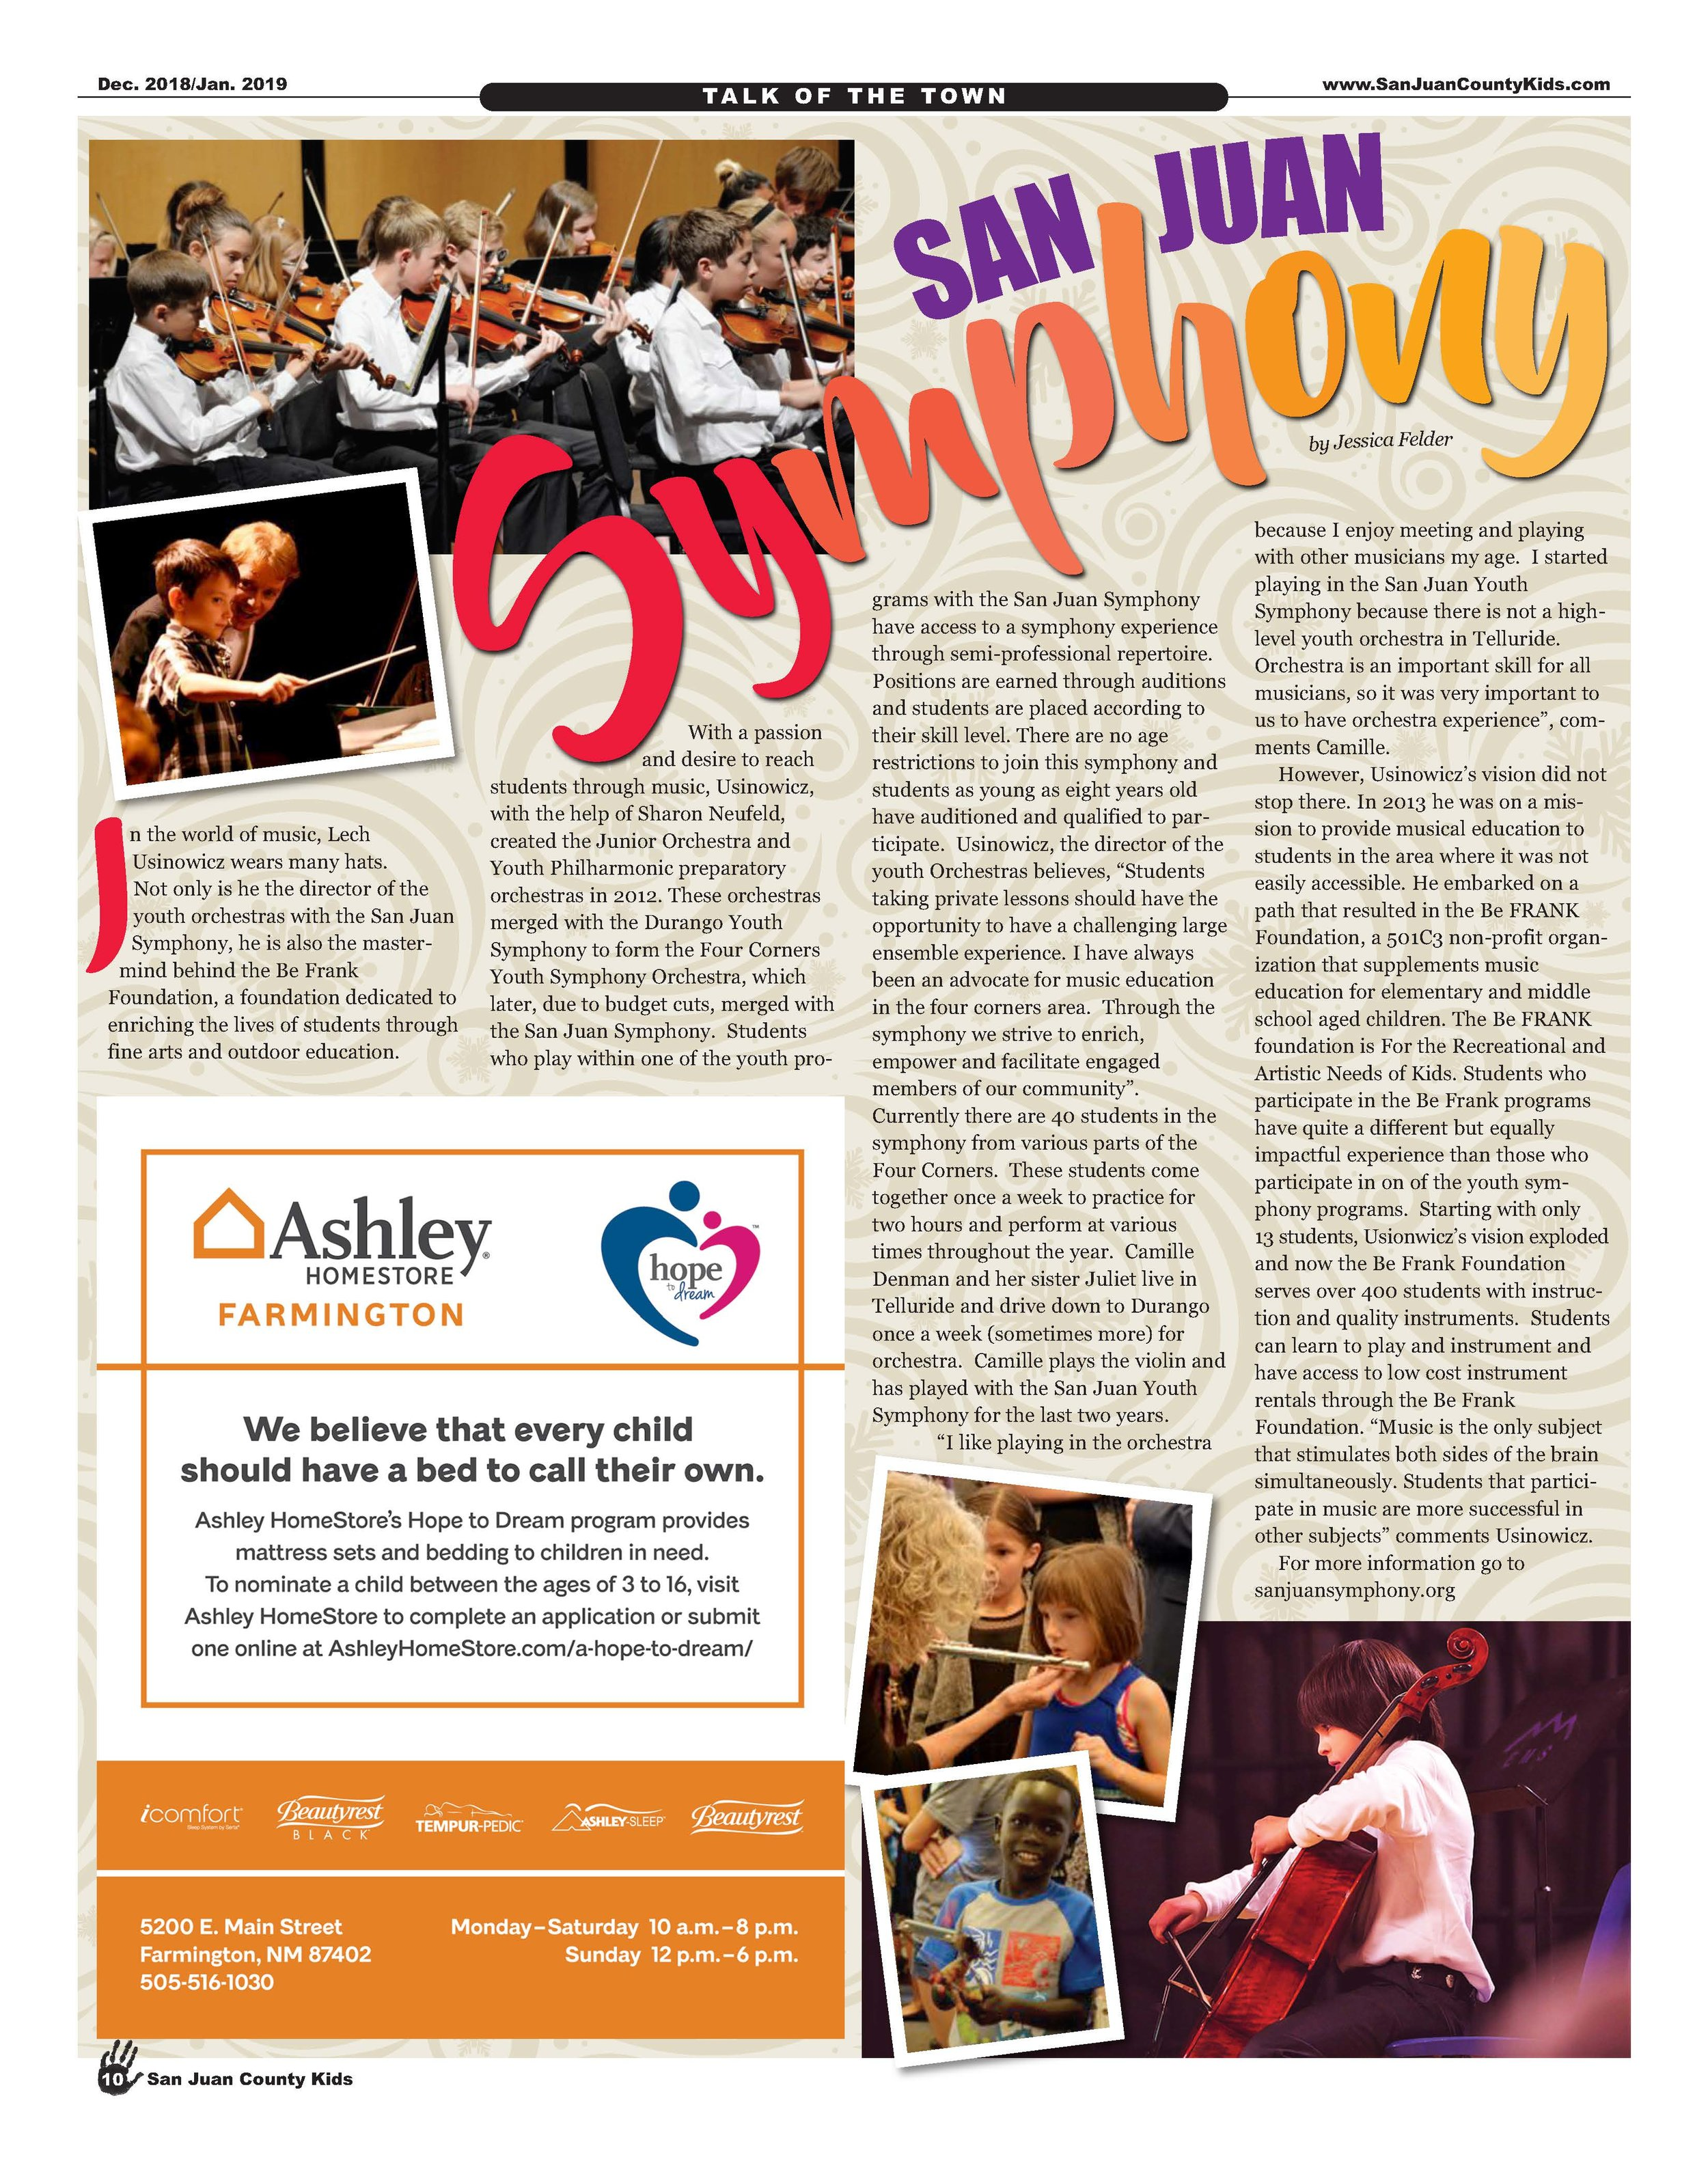 SJCK Dec18Jan19-proof2_Page_10.jpg